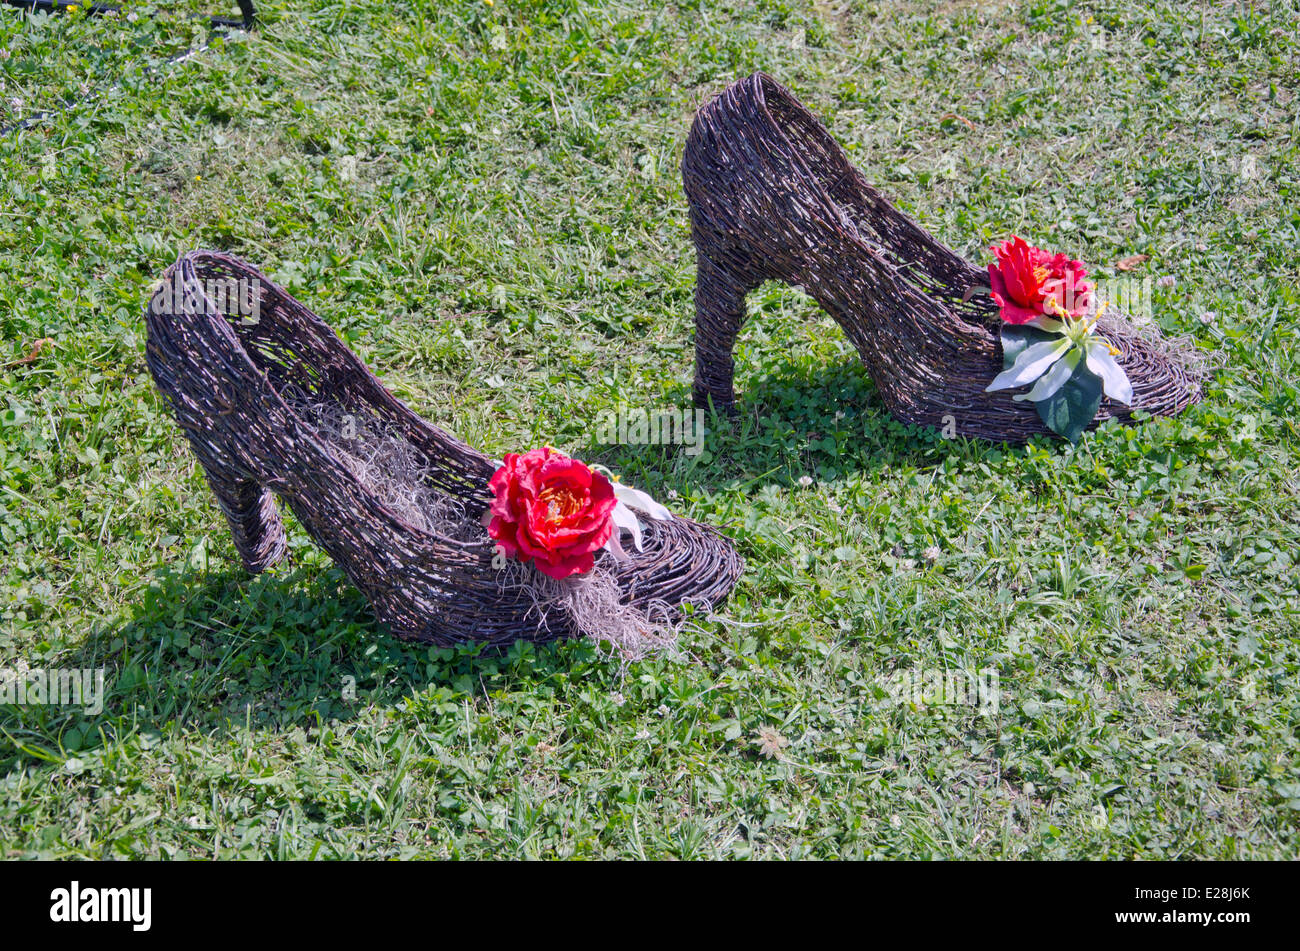 shoe stiletto wooden florist composition on grass in park - Stock Image